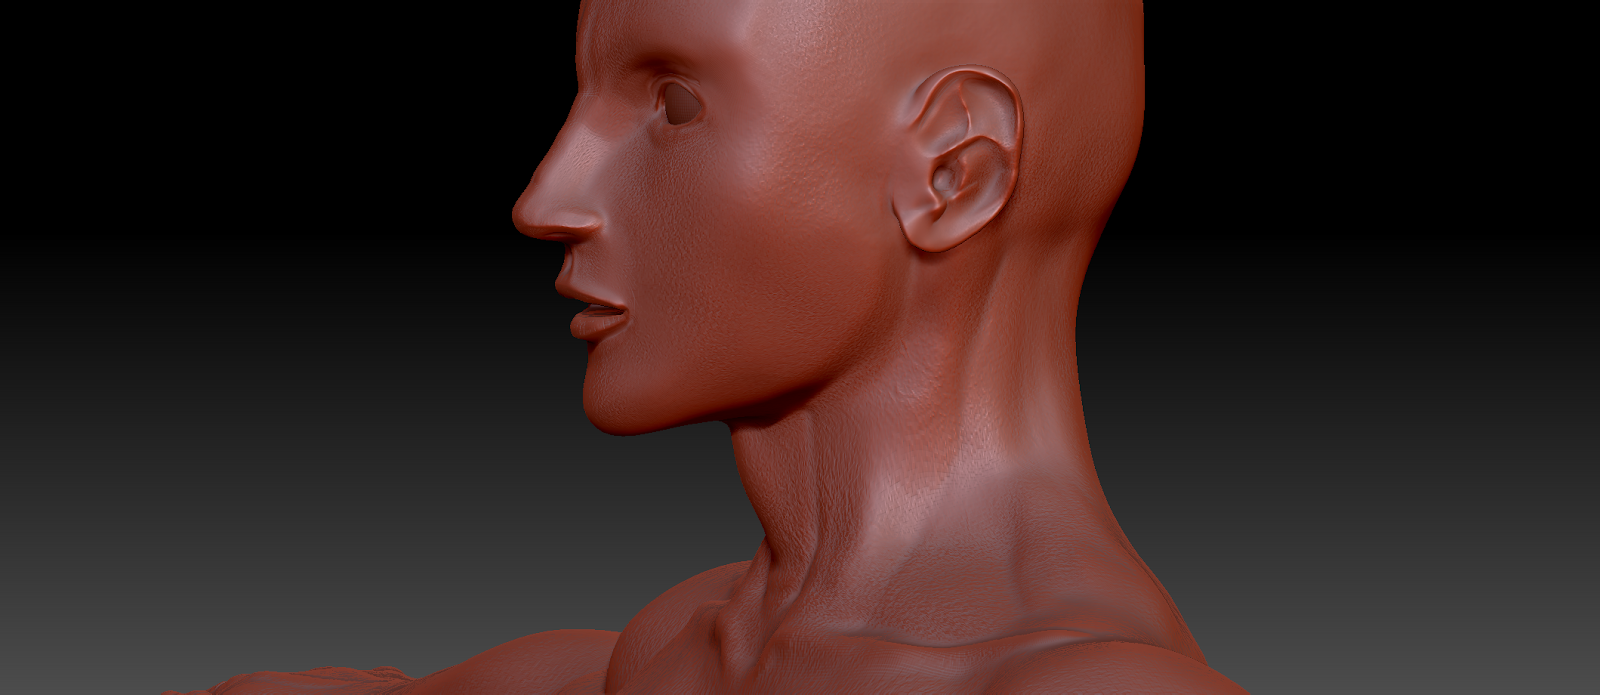 Zbrush tool used for 3D modeling